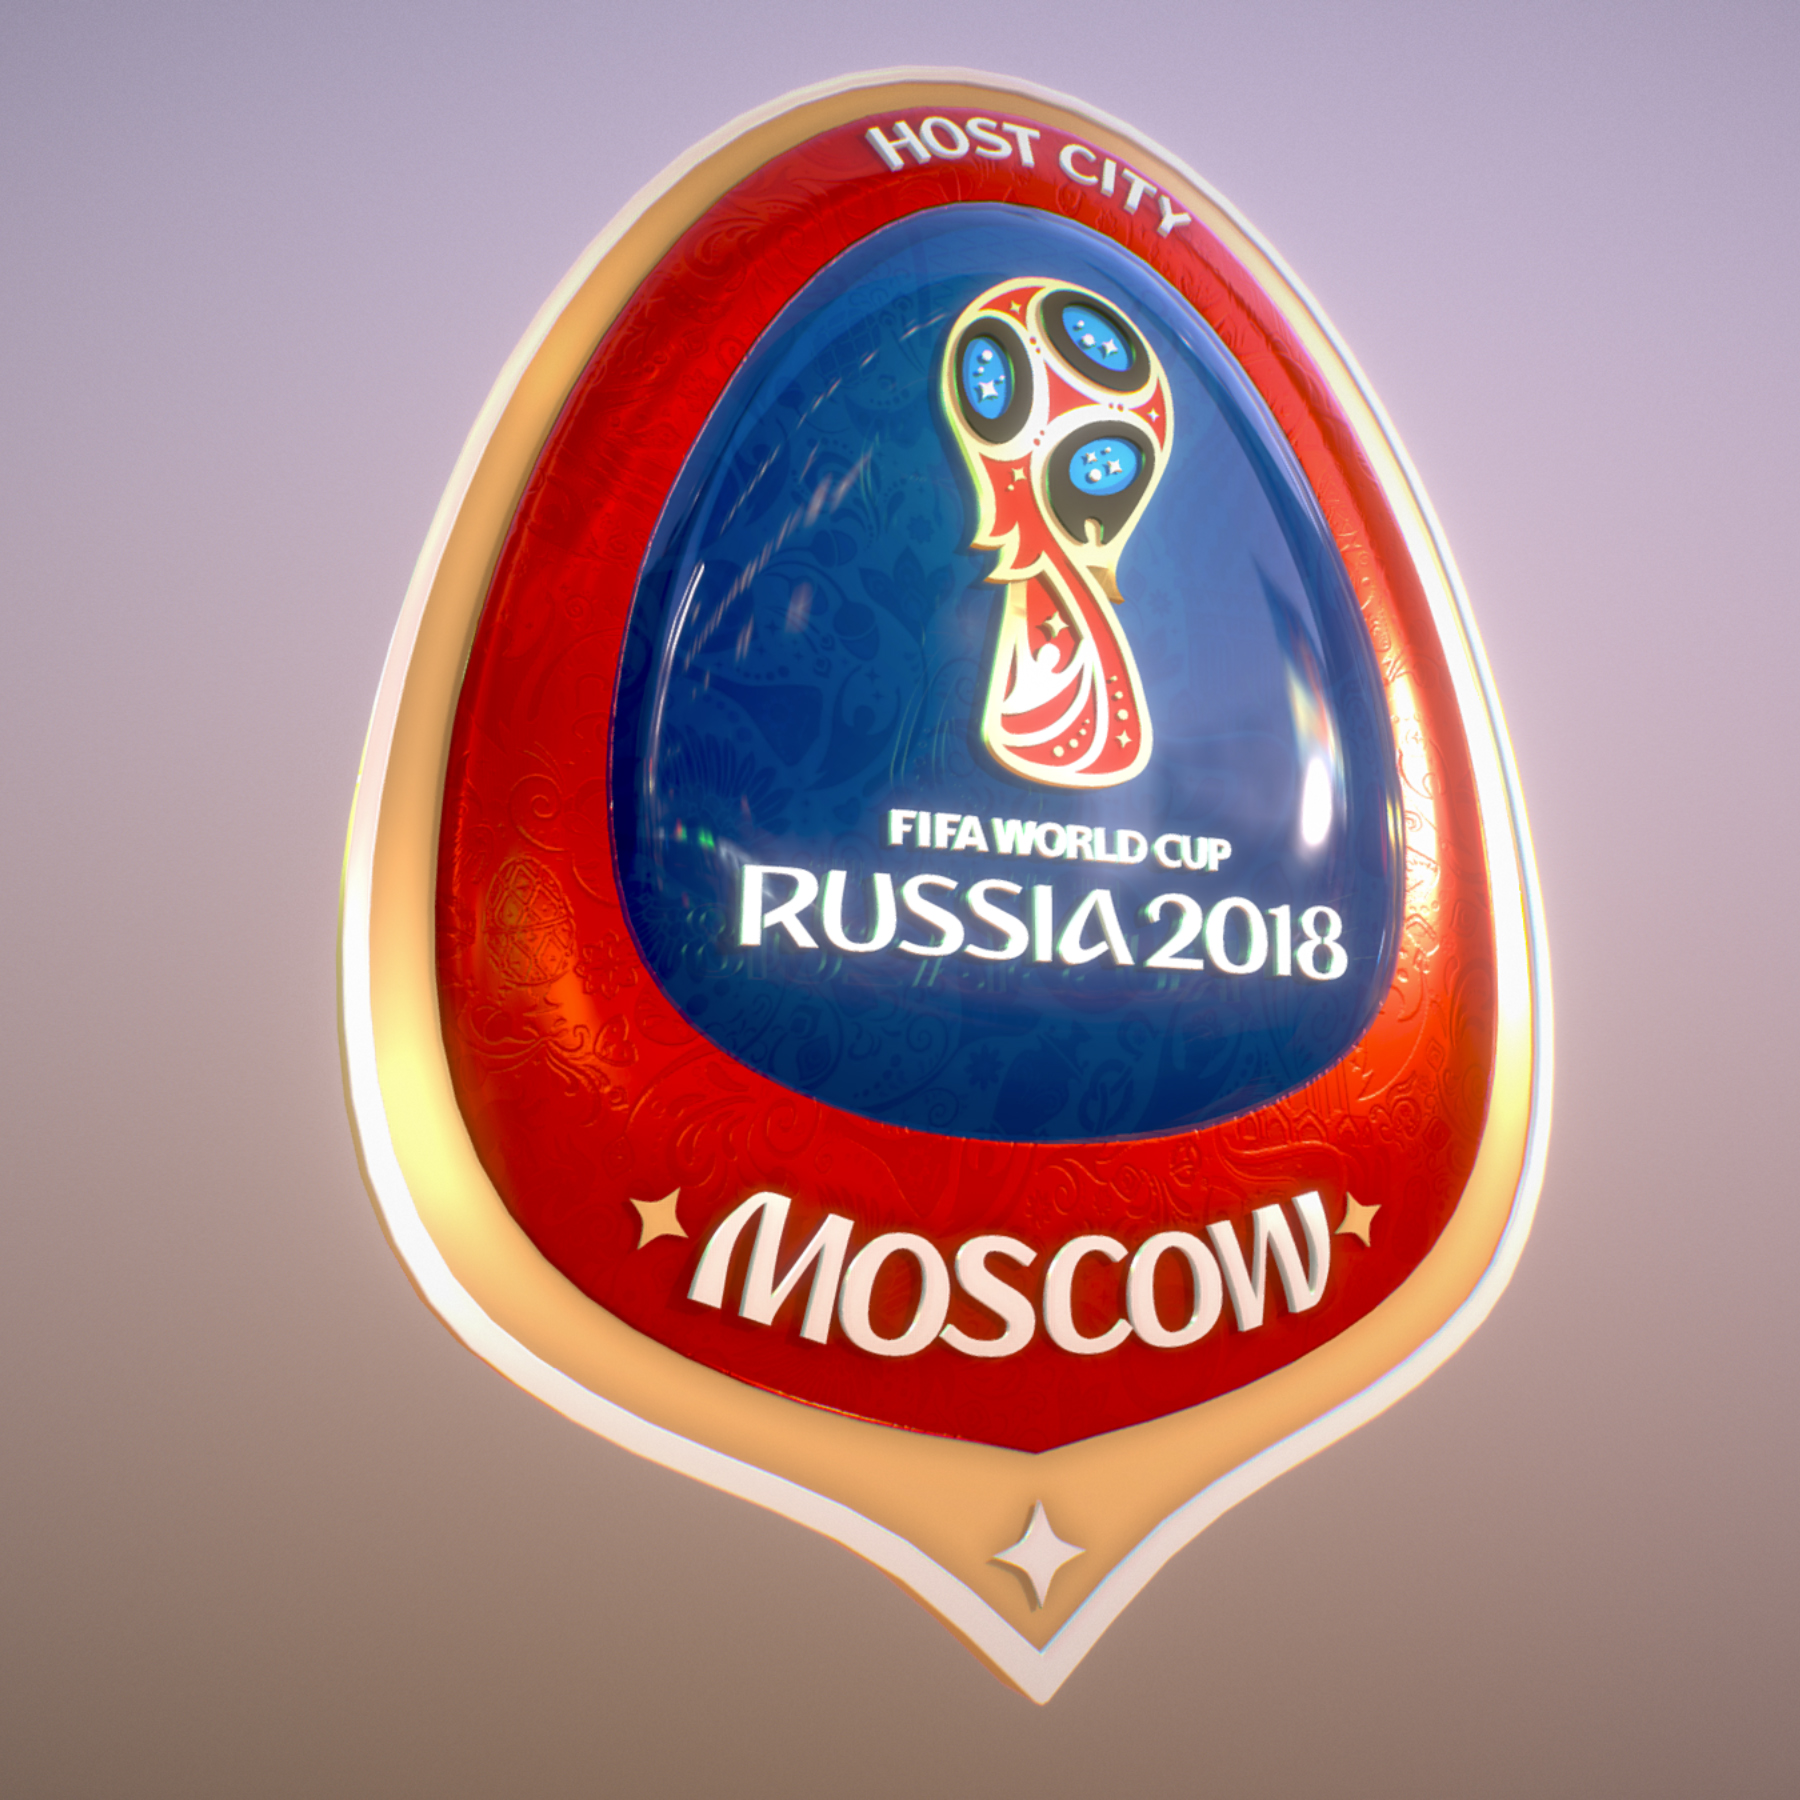 moscow host city world cup russia 2018 symbol 3d model max  fbx jpeg jpg ma mb obj 271650